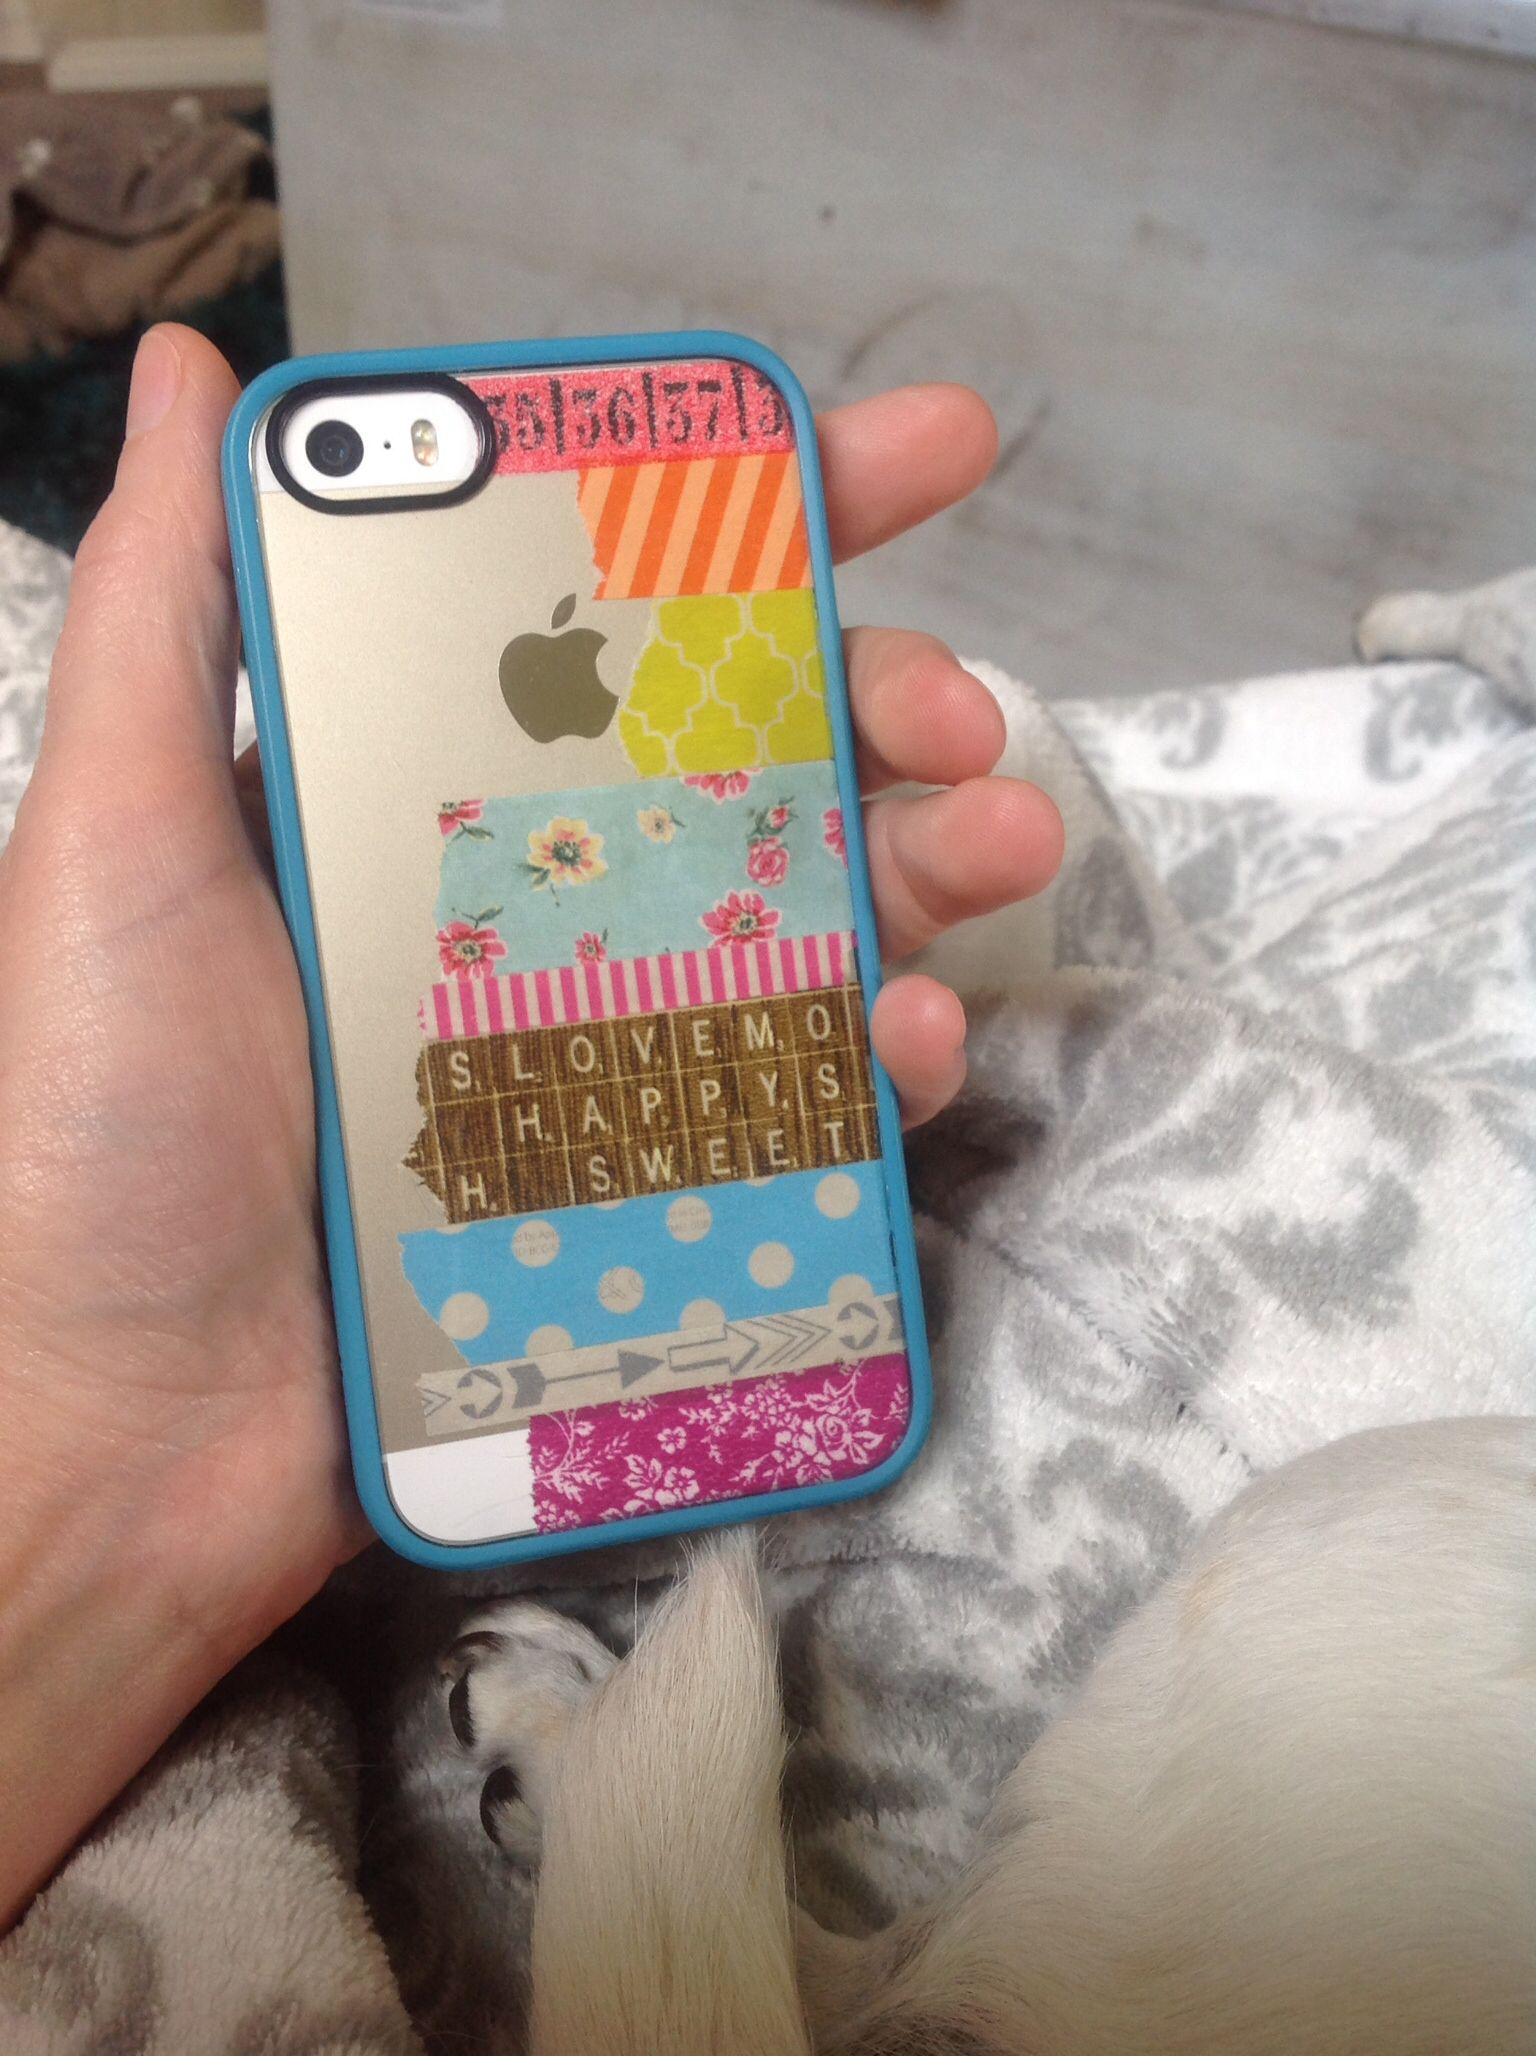 I used a clear back iPhone cover. Cover the back of your phone in the colors/patterns you like, then place your cover over the design. Washi tape will not damage your phone. Change the design whenever you want! Fun!!